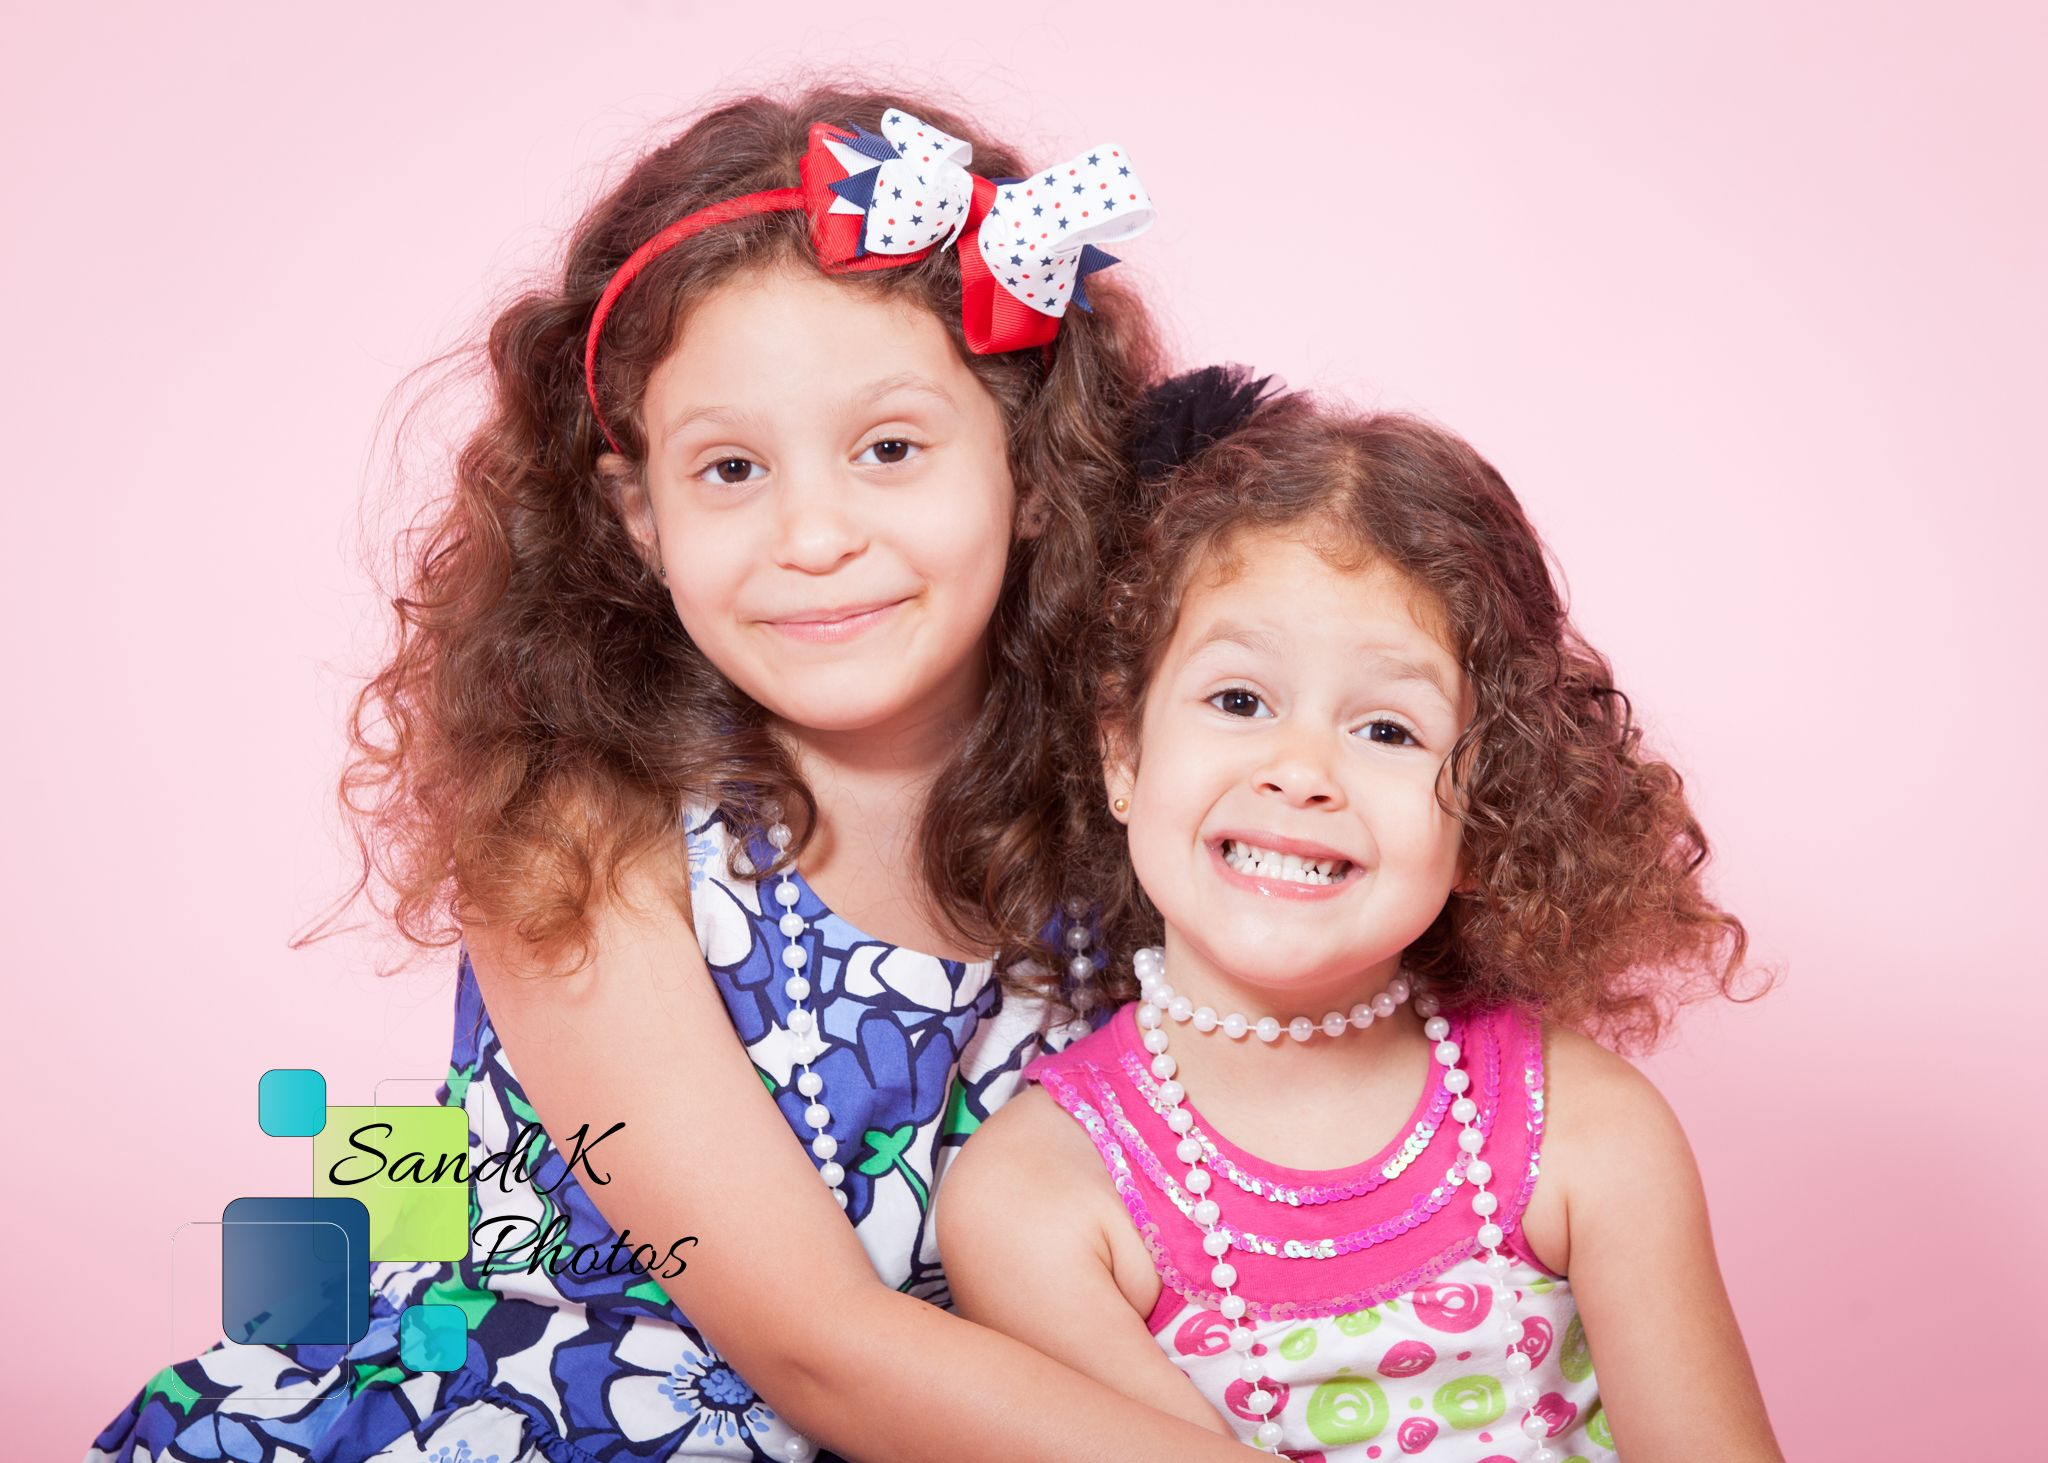 children photographer, child photographer, kids photos, scranton photographer, moscow photographer